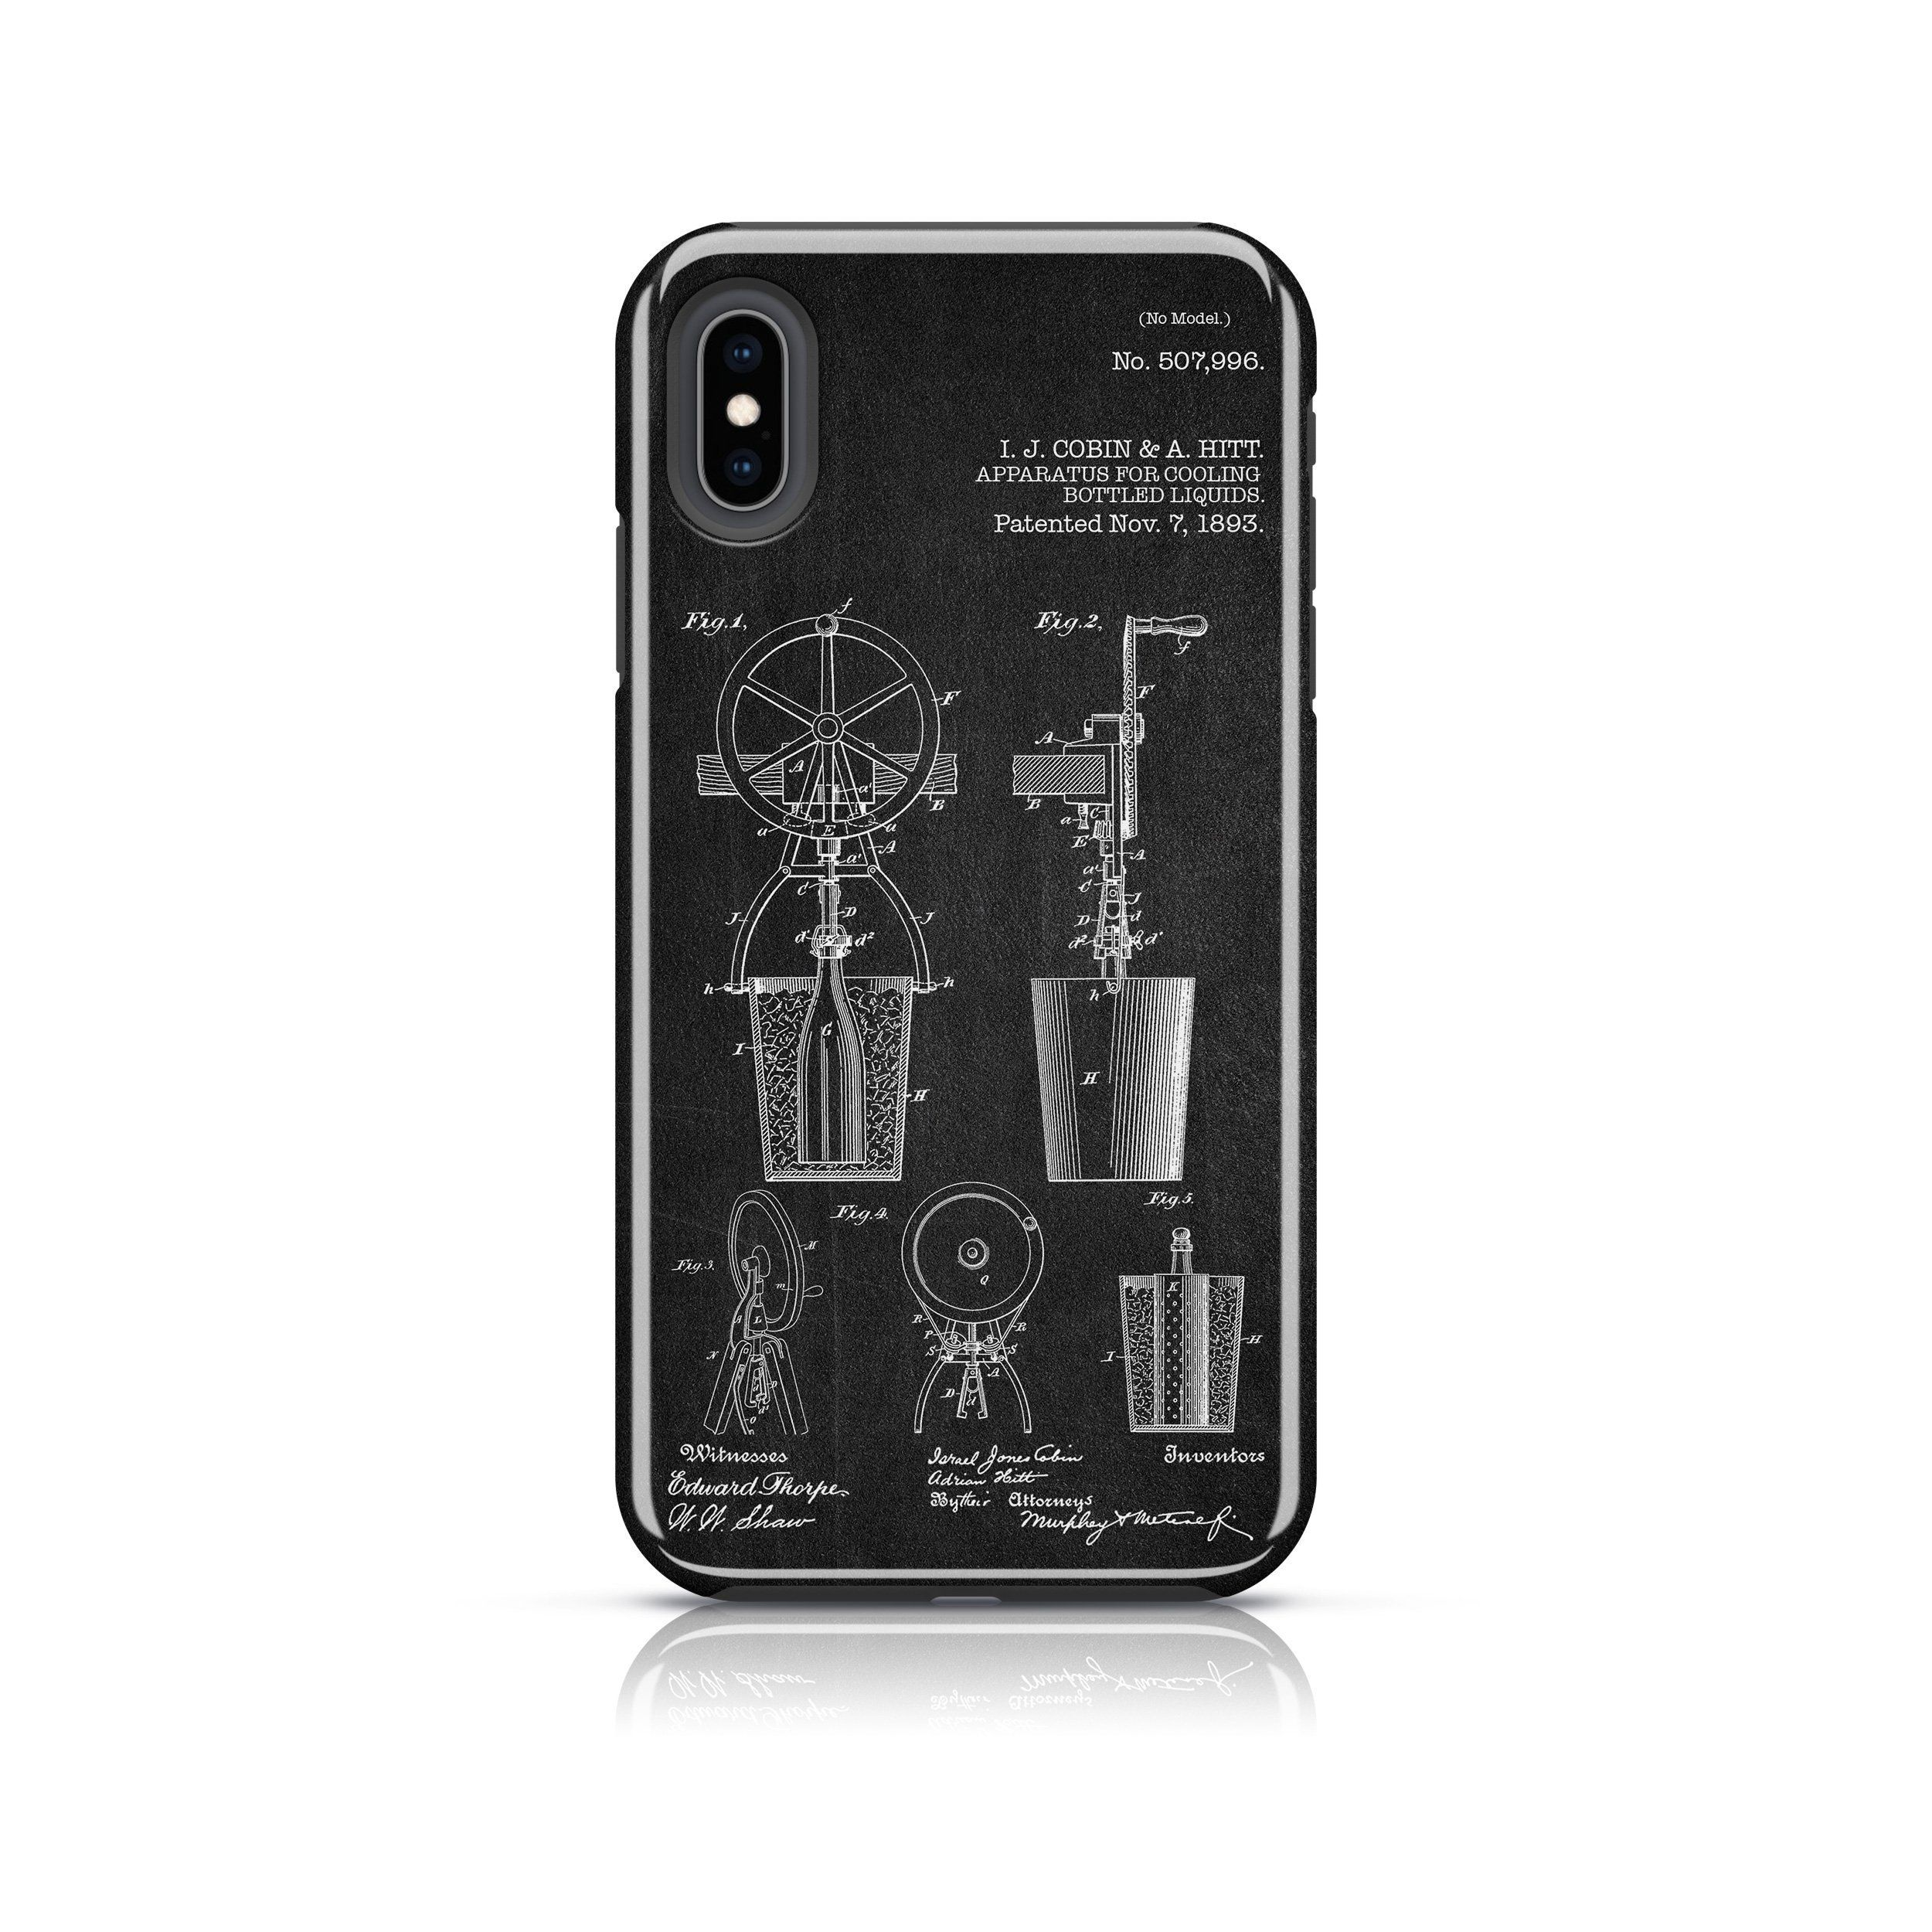 Apparatus For Cooling Bottled Liquids Patent Iphone Case Iphone Cases Iphone Phone Cases Iphone